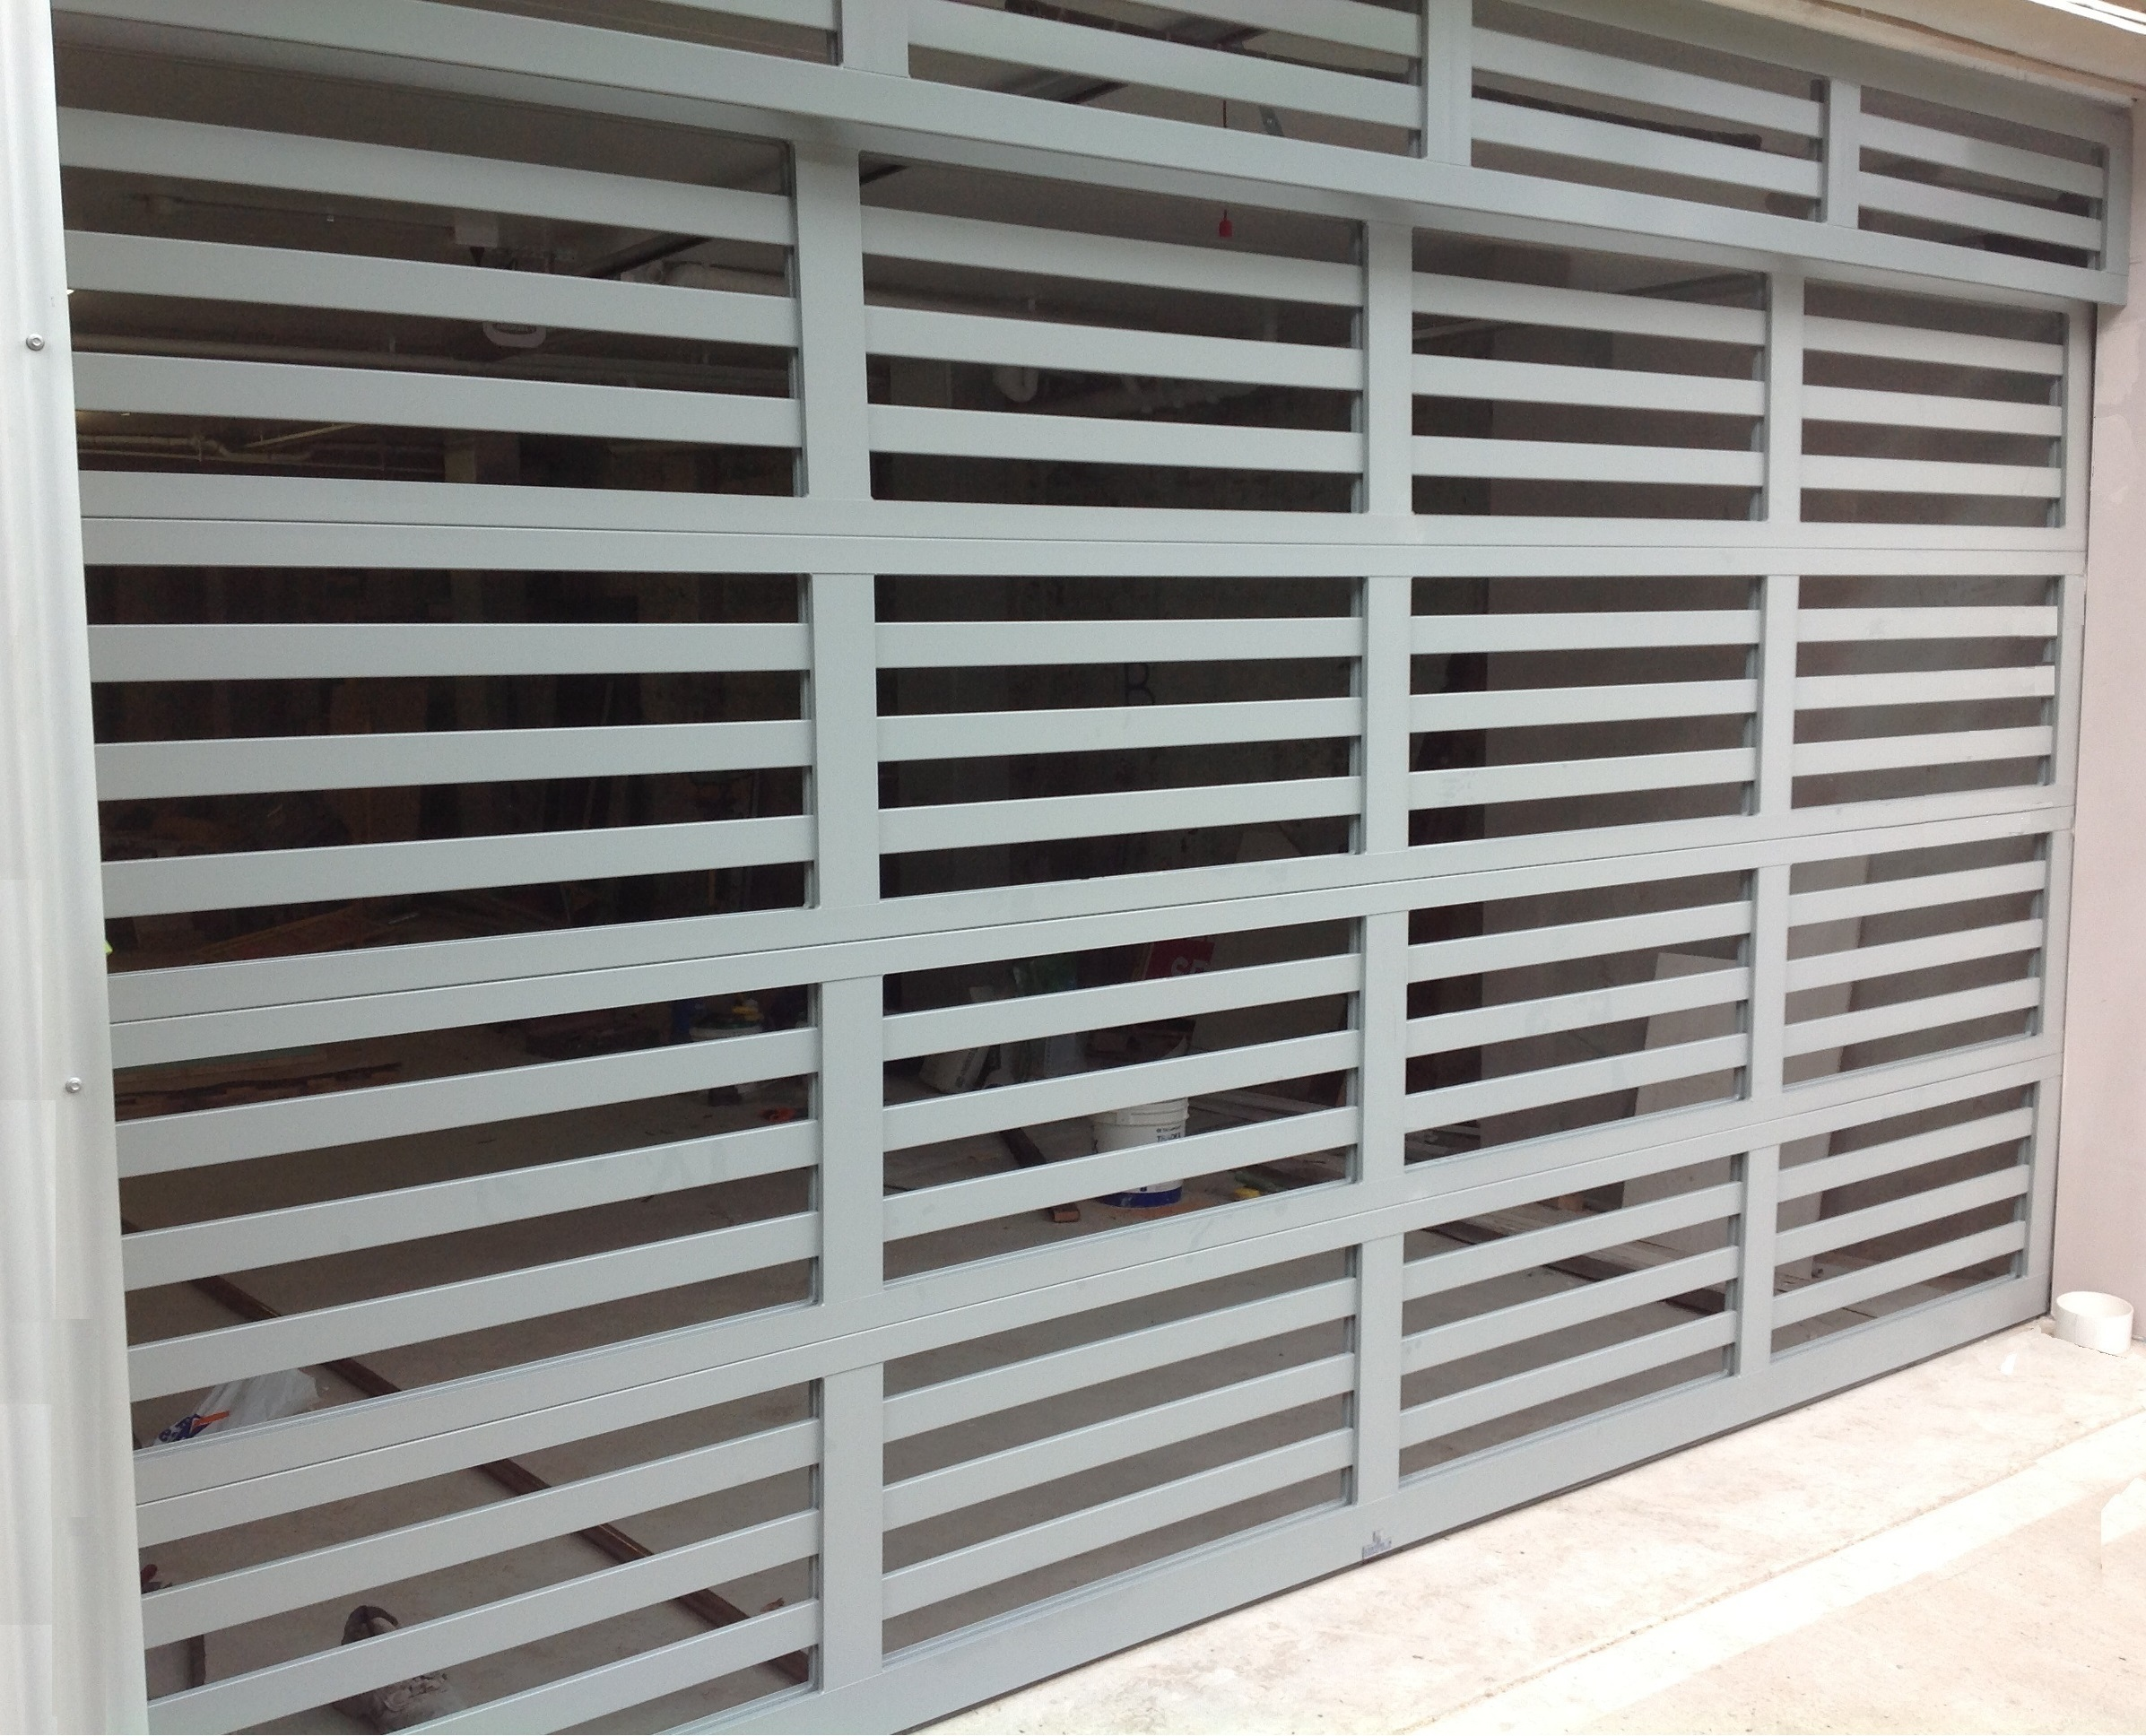 Custom Powder Coated Aluminium Batten Sectional Door (one click on image to enlarge)